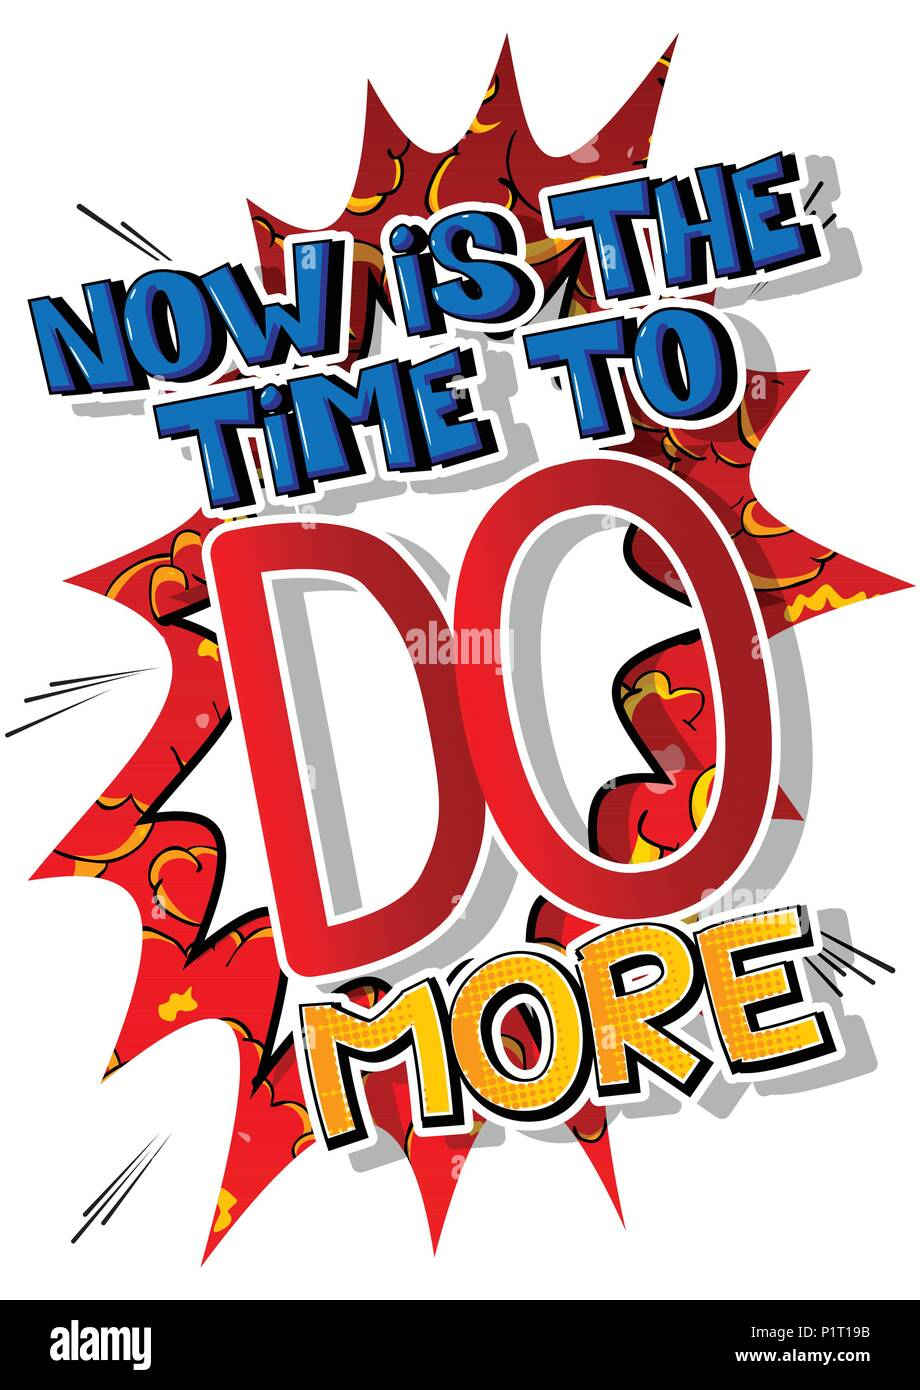 Now is the time to do more. Vector illustrated comic book style design. Inspirational, motivational quote. - Stock Image